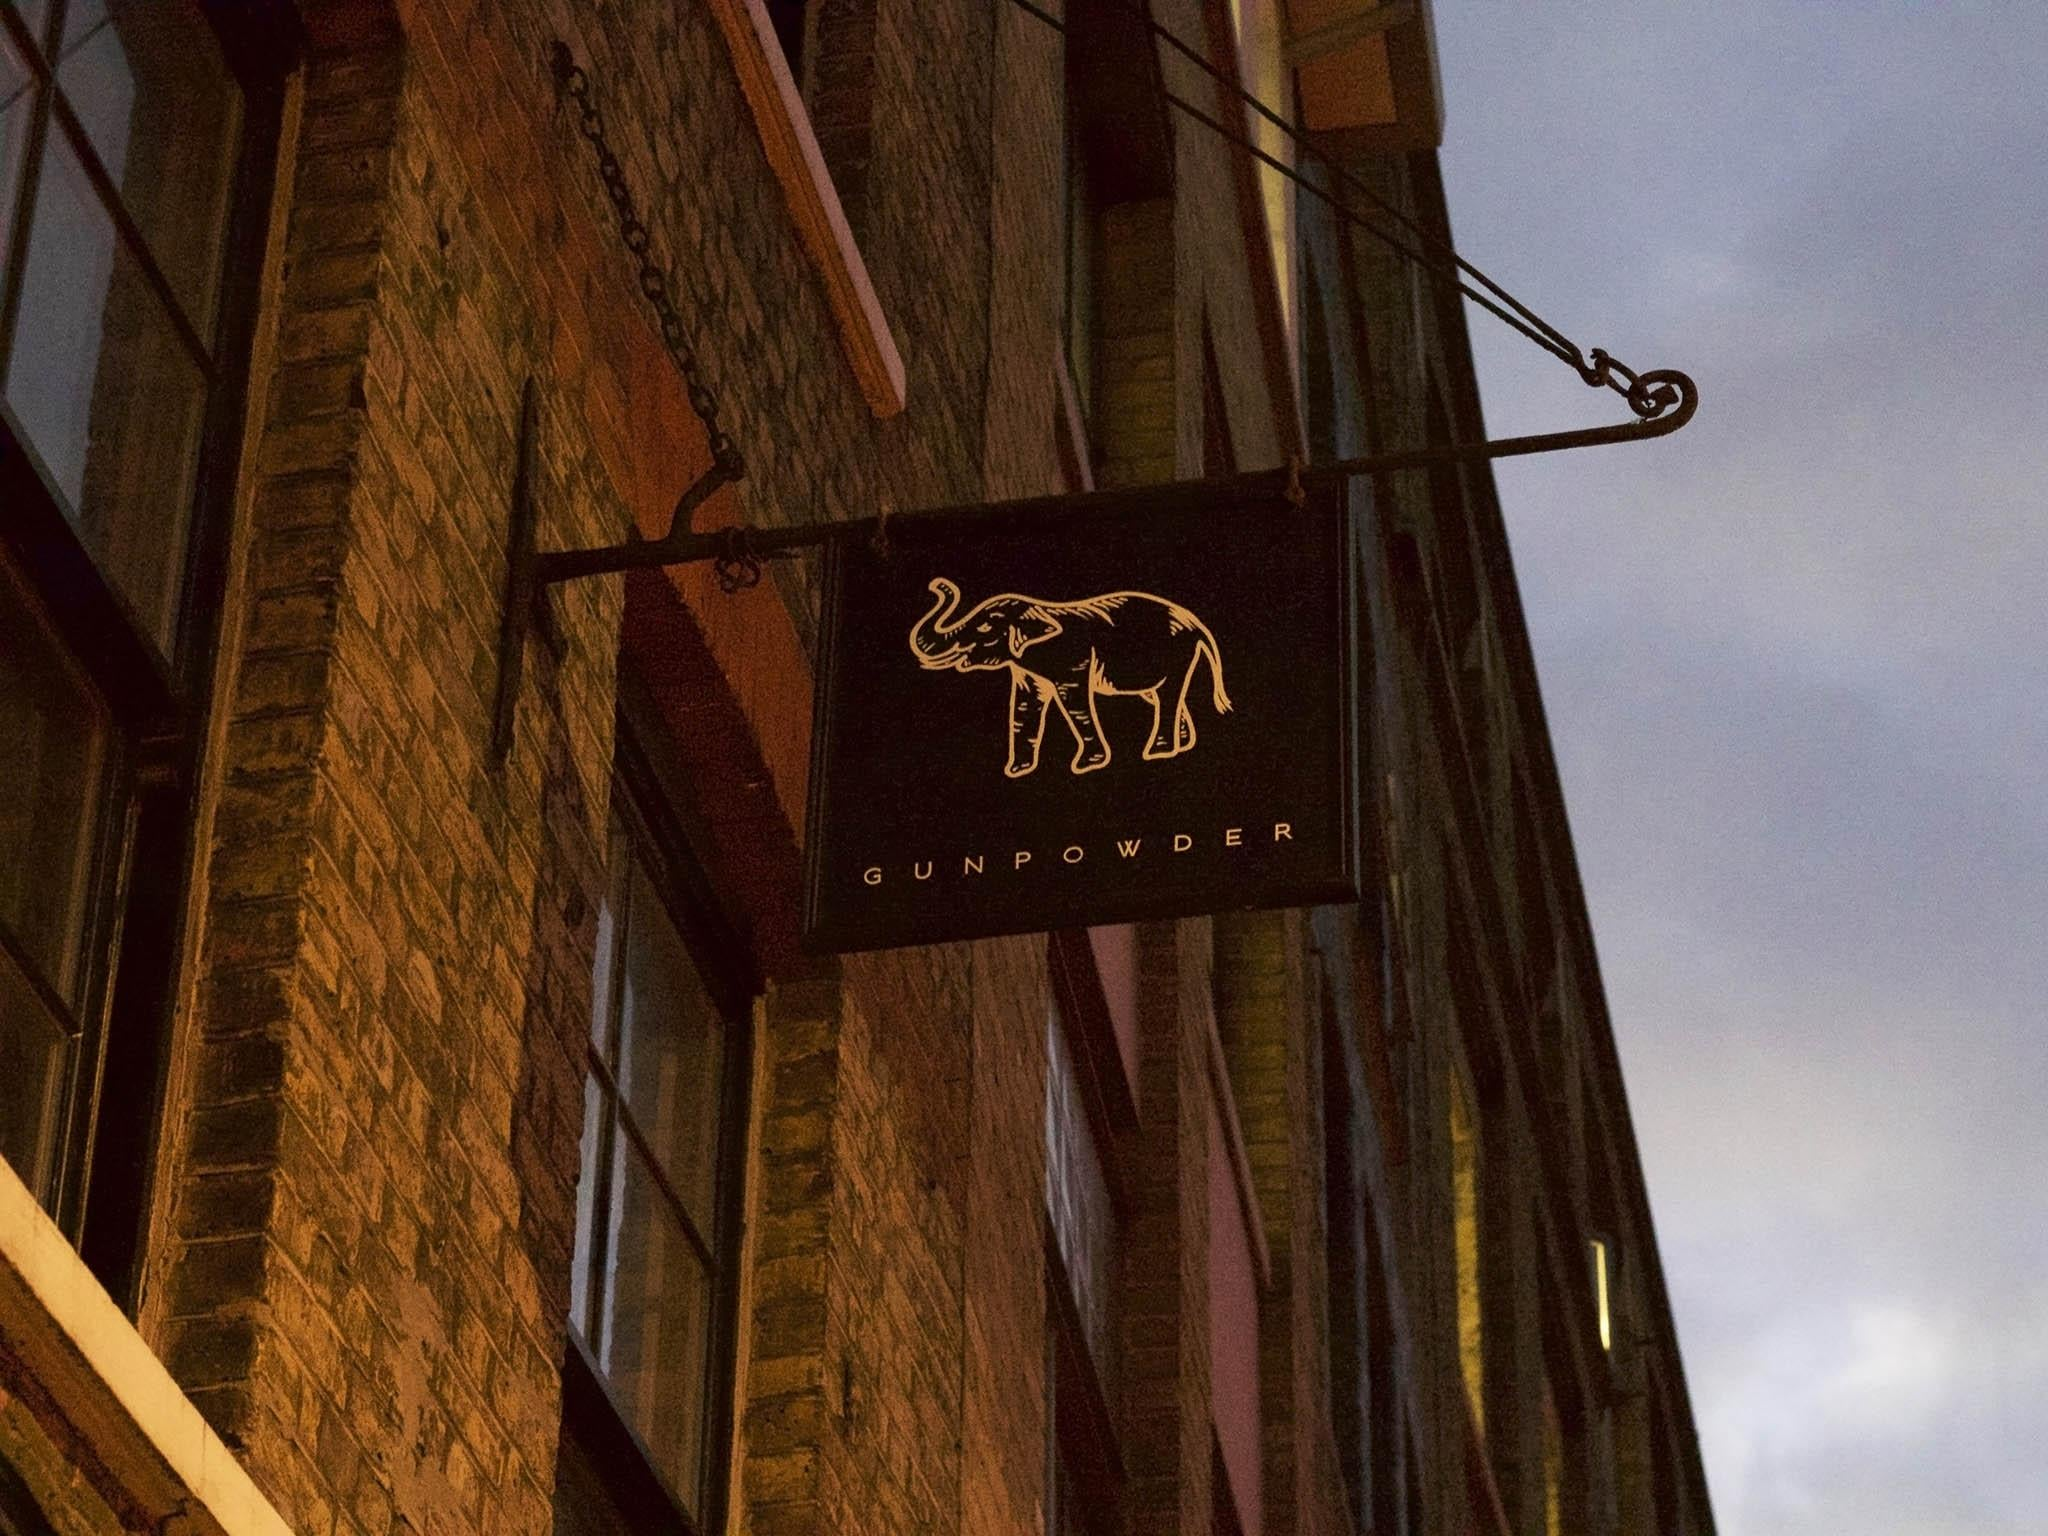 Restaurant review, Gunpowder: I'll be back... and this time I meant it 1